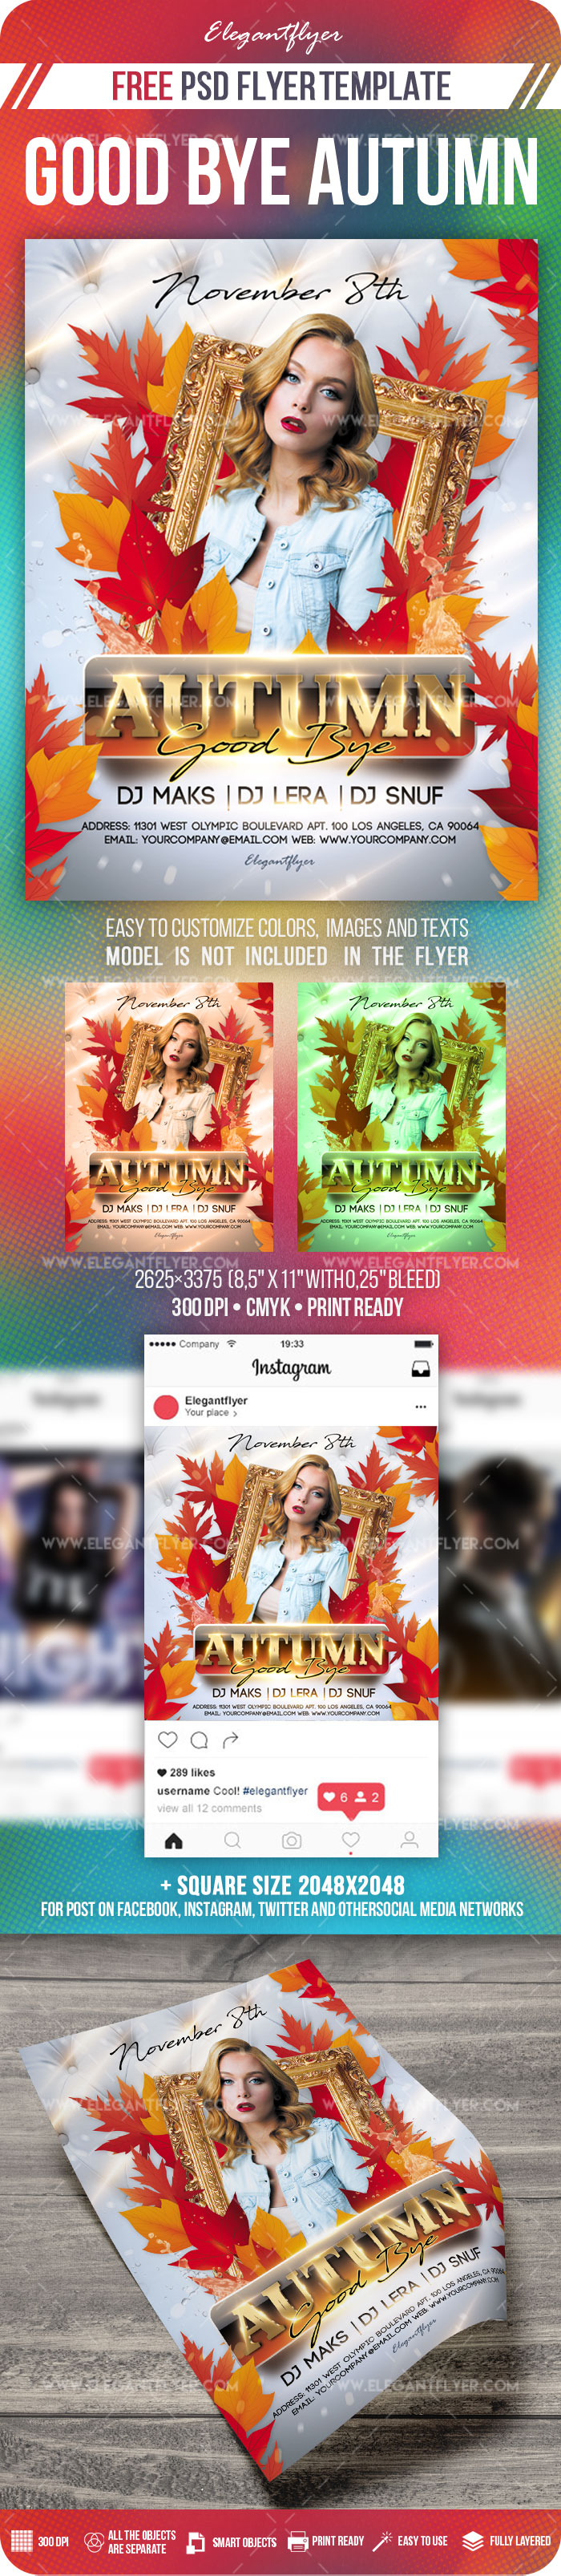 Good Bye Autumn – Free Flyer PSD Template + Instagram template